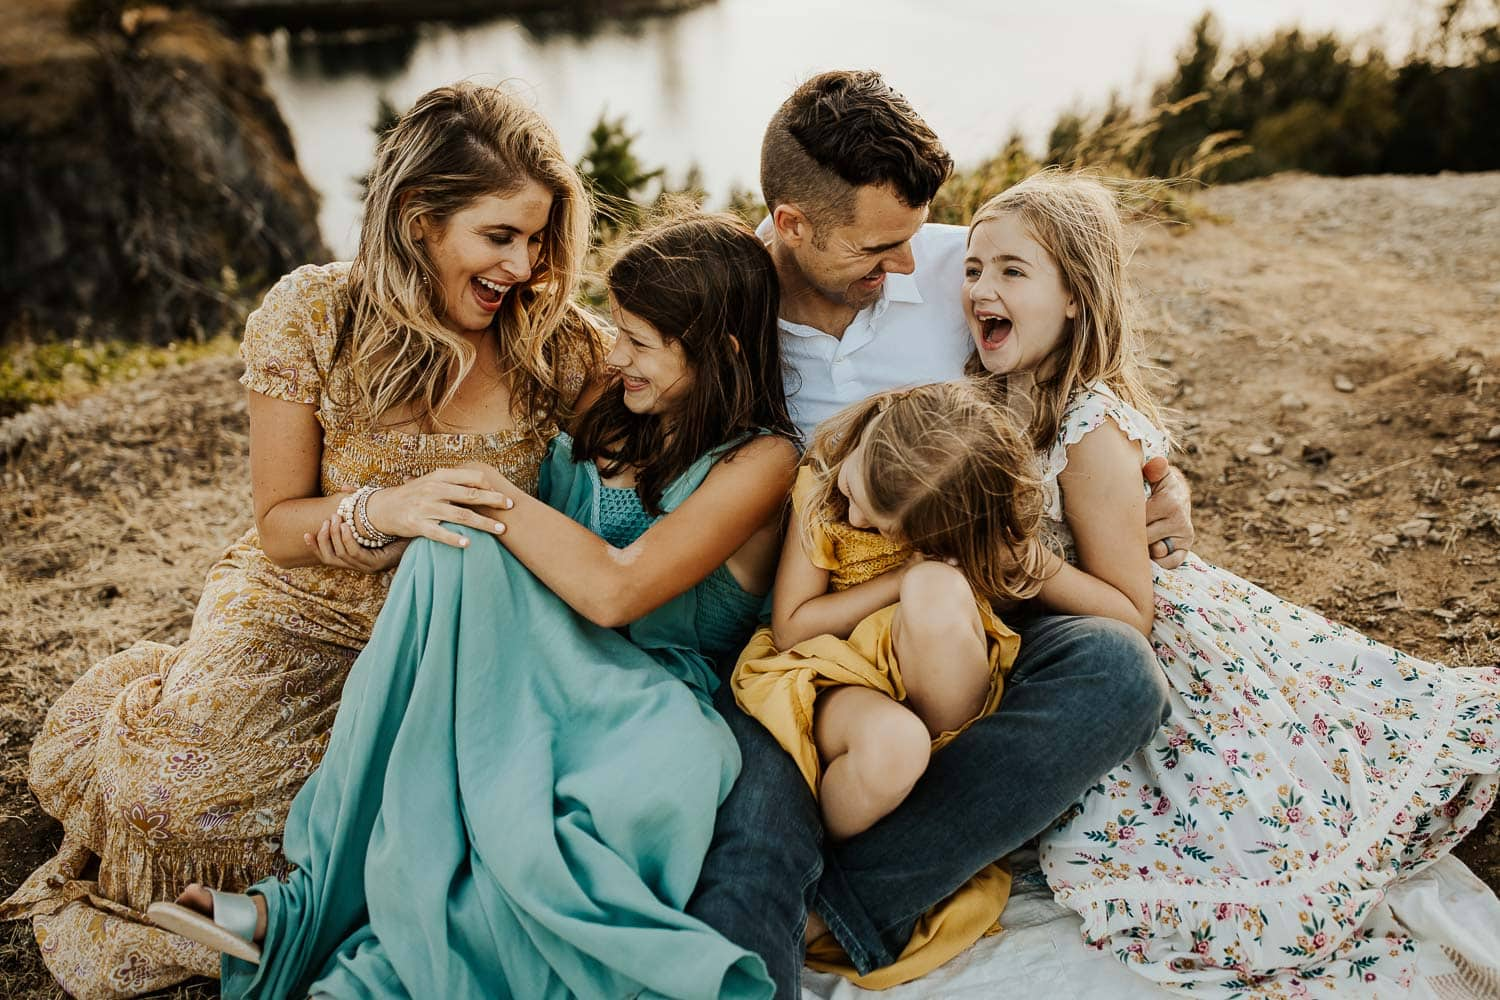 Laughing family on blanket in the columbia river gorge by Portland oregon